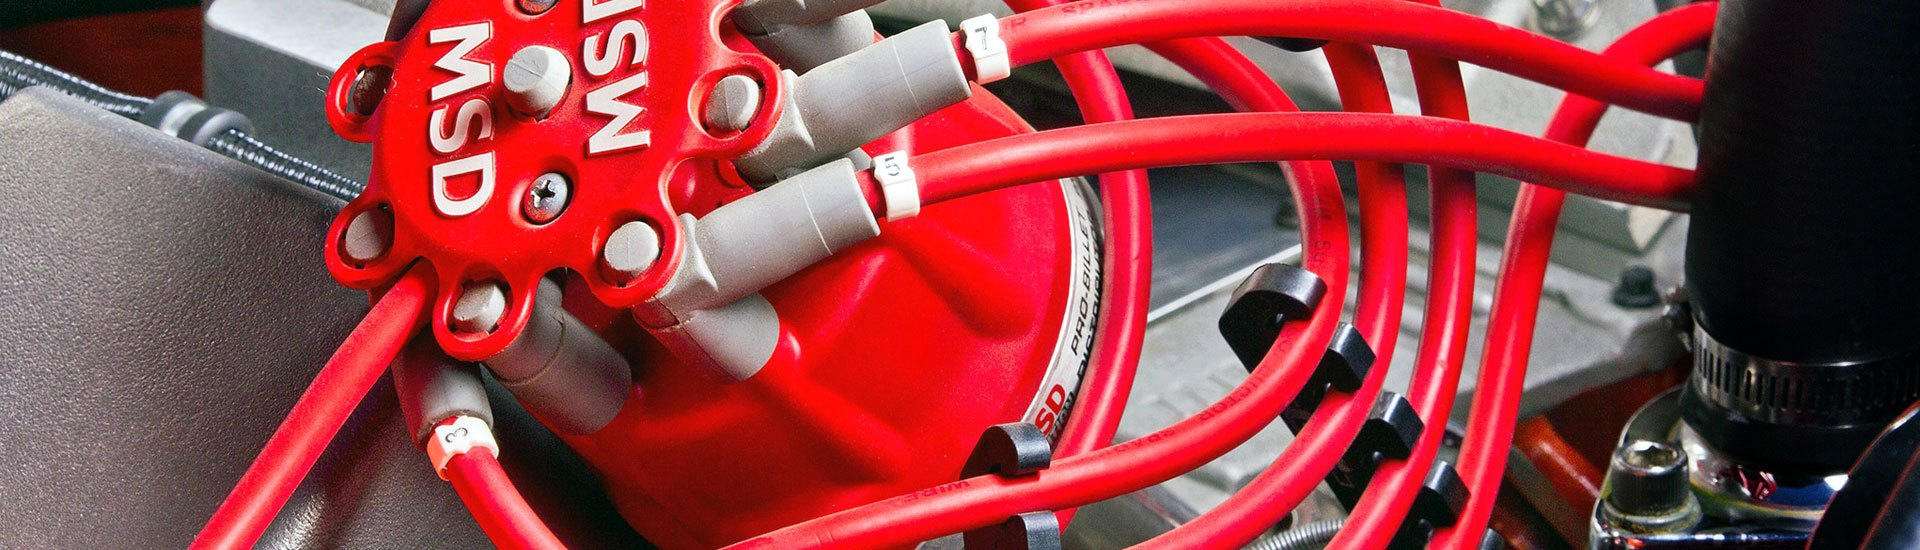 Racing Ignition & Electrical System Parts — CARiD.com on